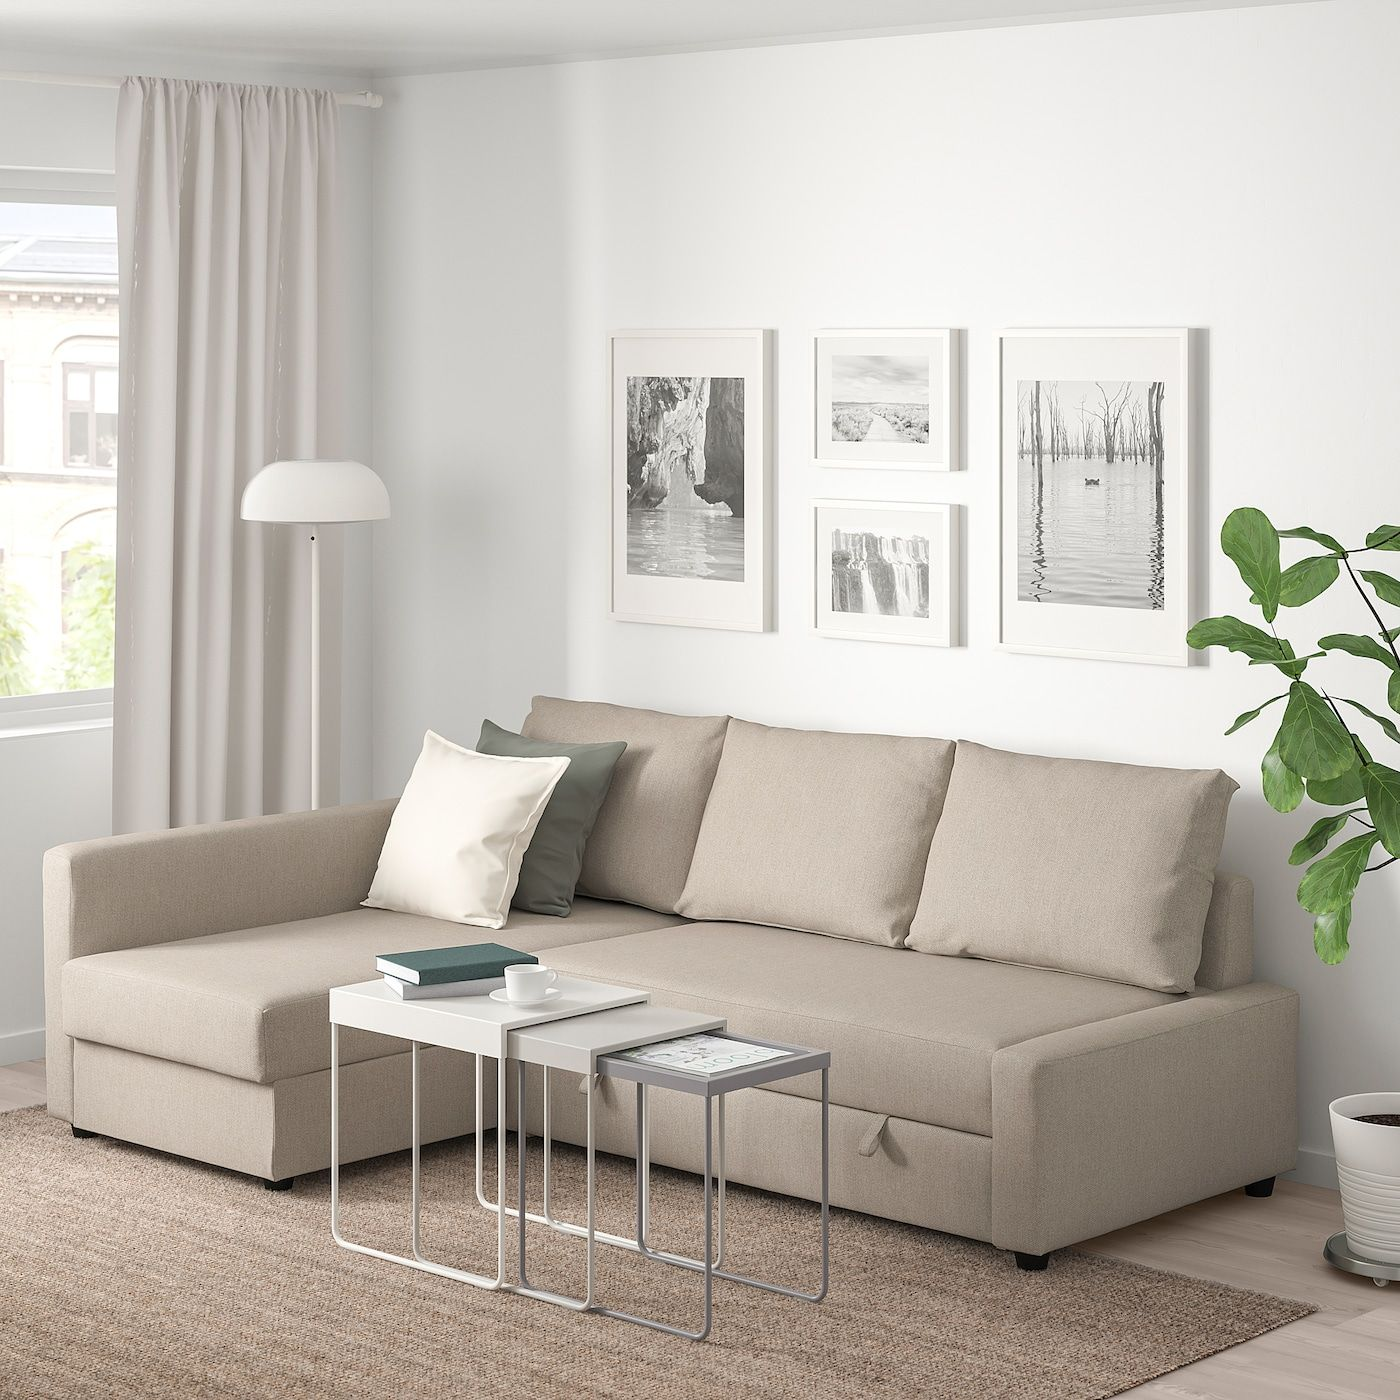 Admirable Ikea Friheten Corner Sofa Bed With Storage Hyllie Beige Pabps2019 Chair Design Images Pabps2019Com